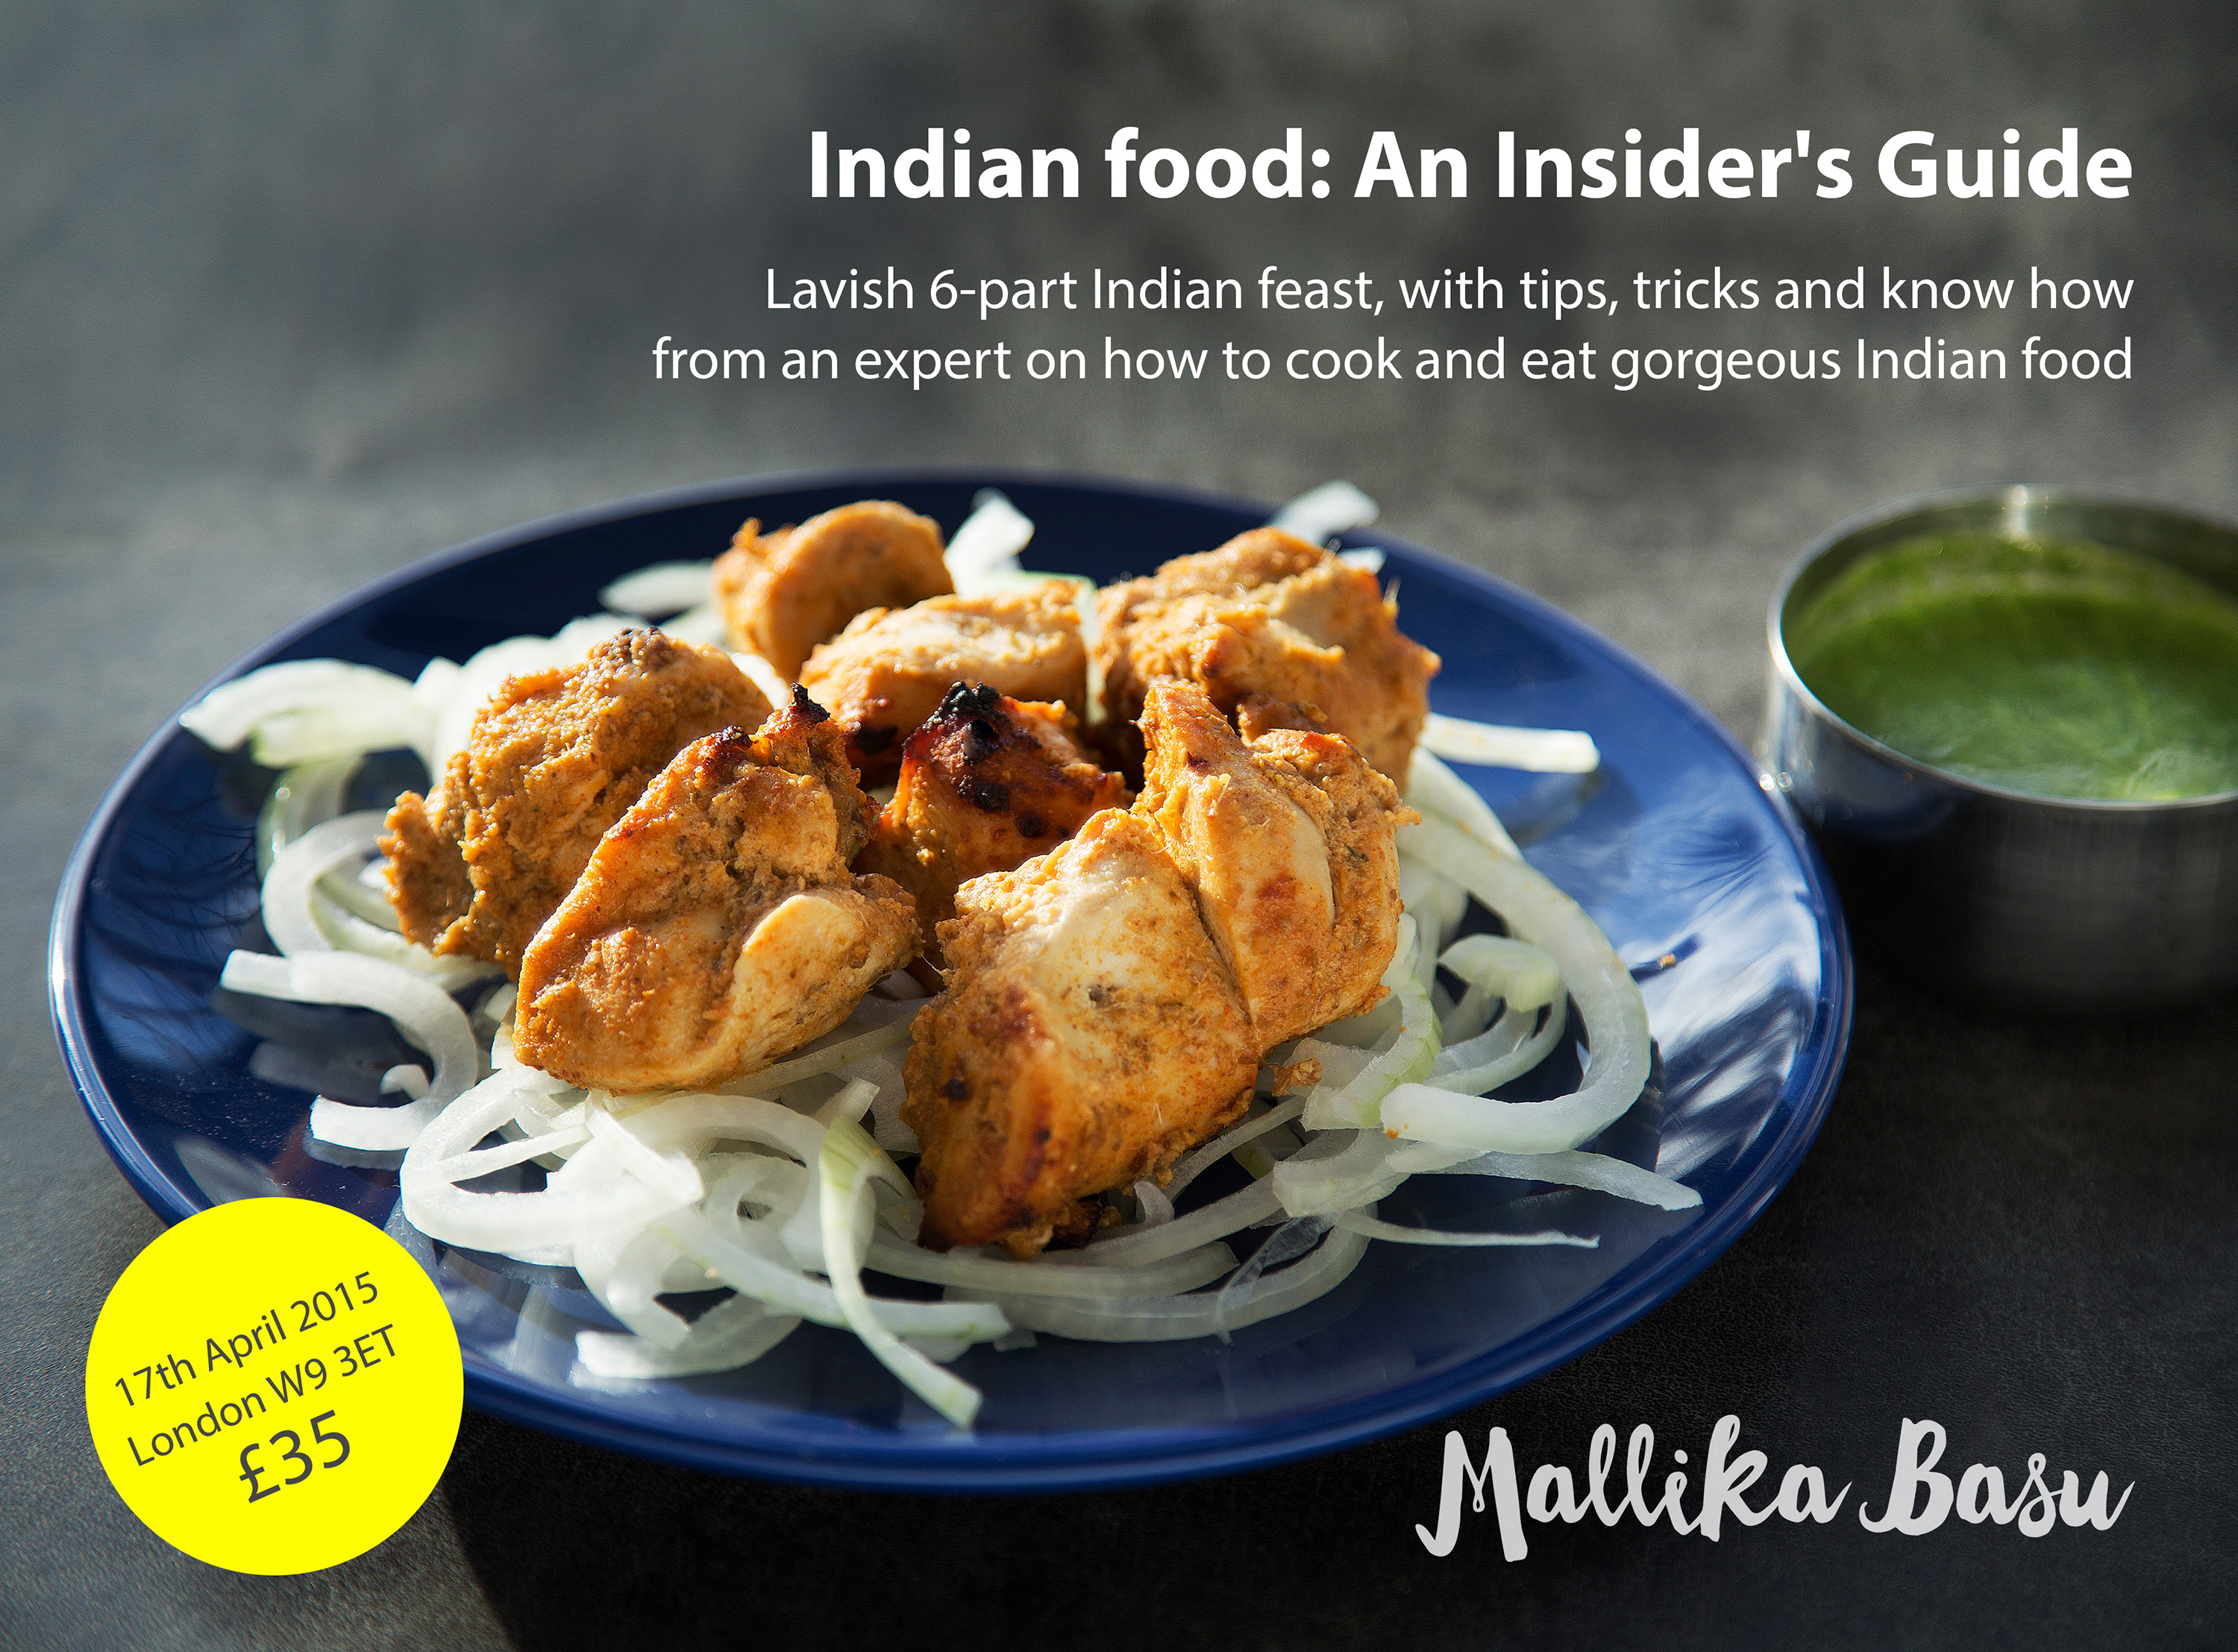 Pop up indian dinner and talk 17th april london w9 mallika basu pop up indian dinner and talk 17th april london w9 forumfinder Image collections